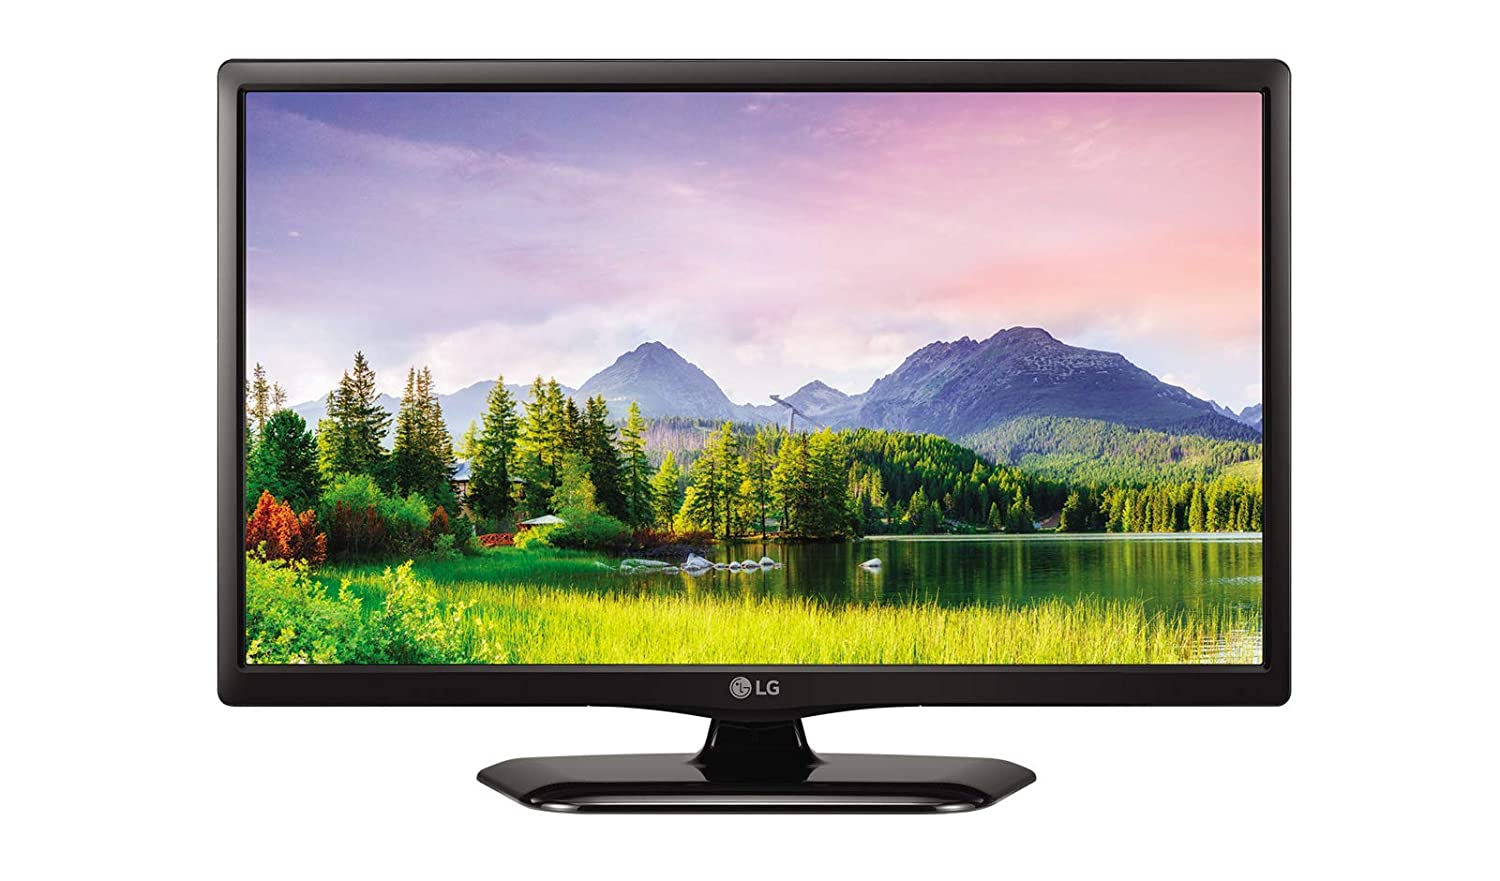 "LG Hospitality Display 8LW8C LCD-TV 8 cm (8"") black: Amazon"